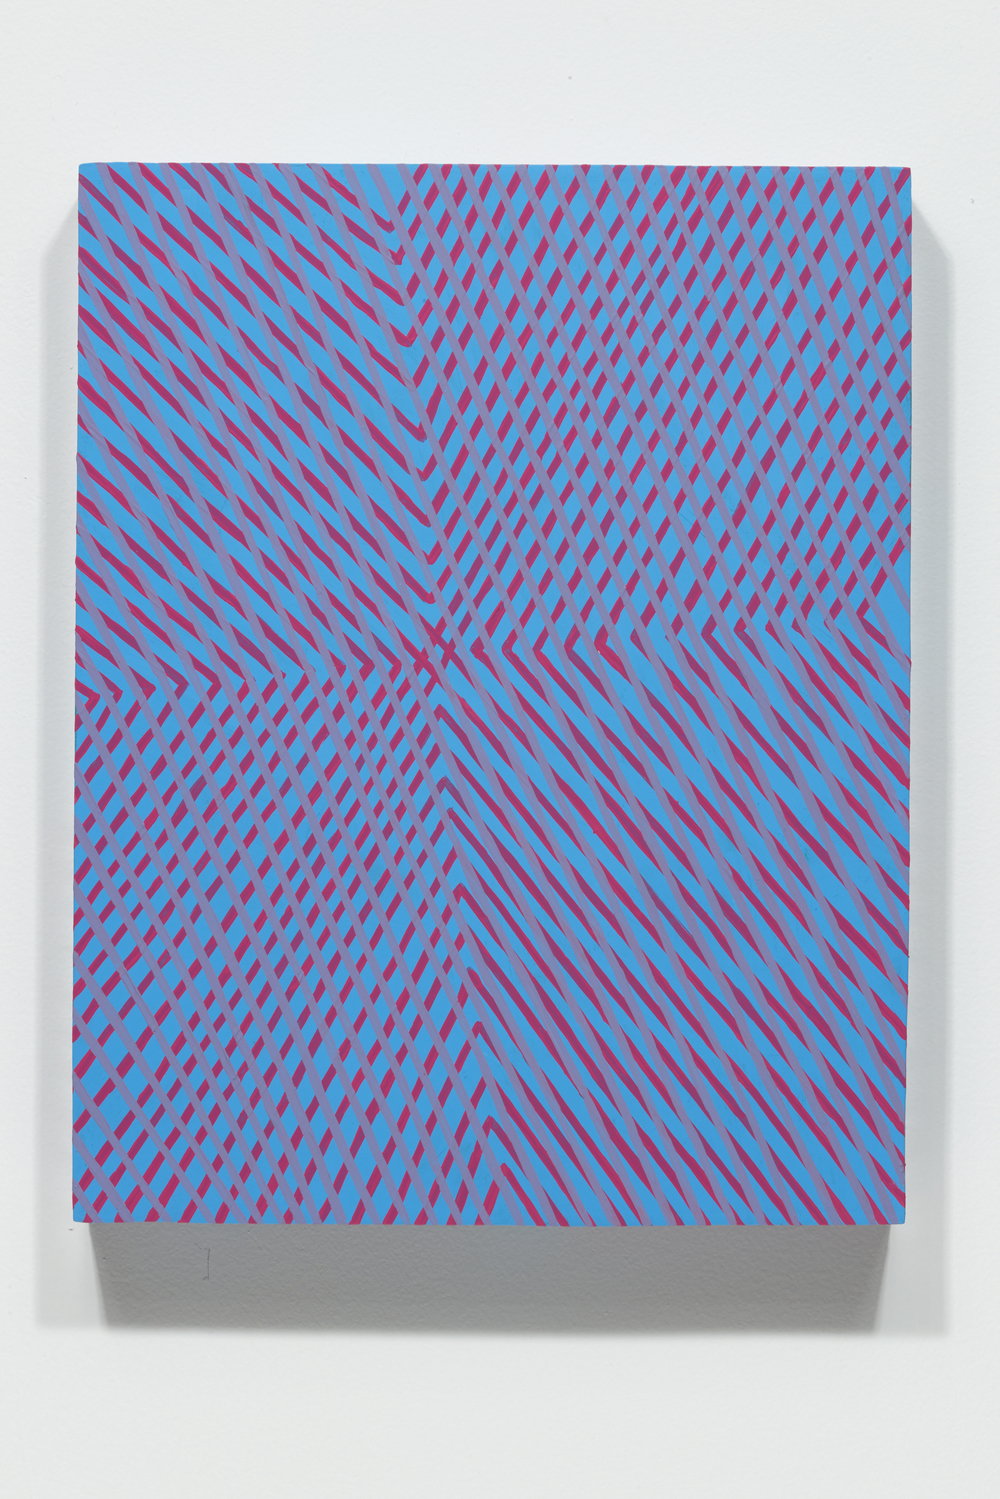 Mel Prest, Low January Sun, 2014, acrylic and fluorescent acrylic on panel, 14 x 11 x 2 inches